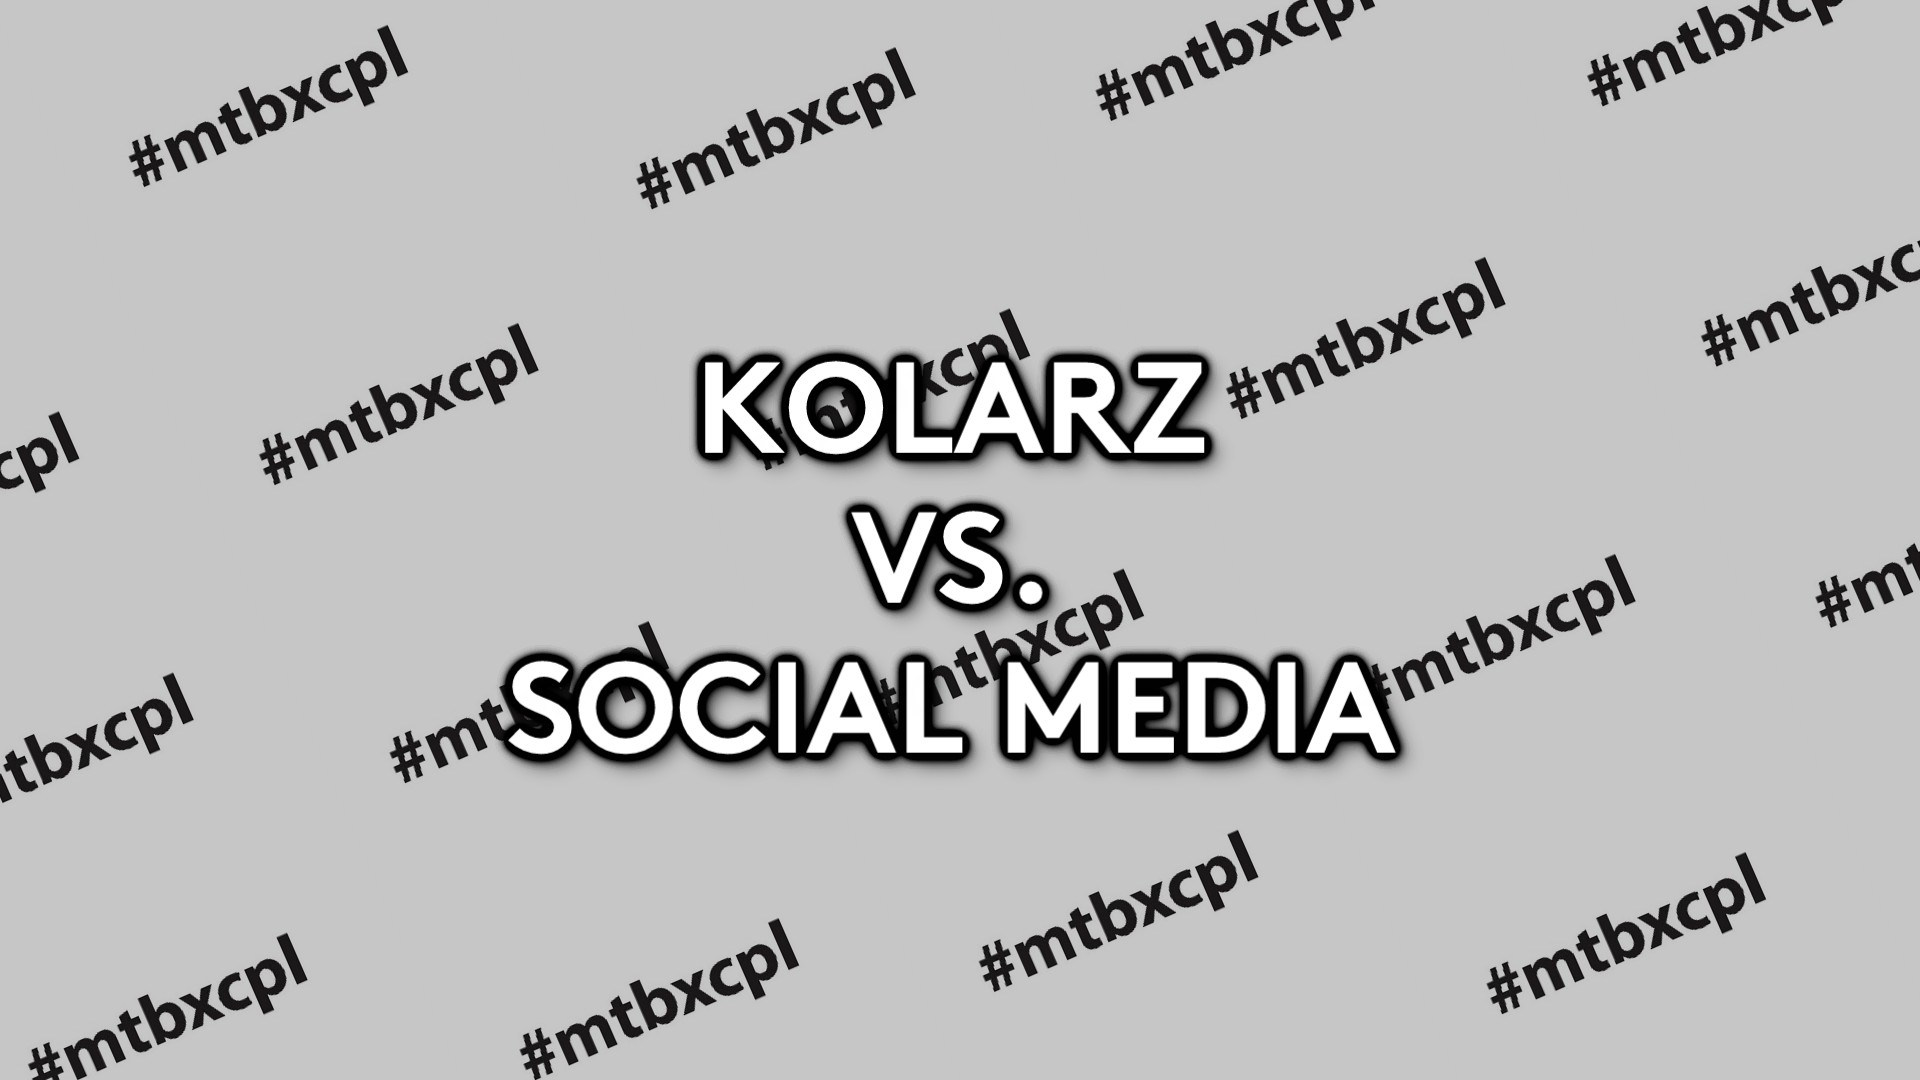 KOLARZ VS. SOCIAL MEDIA